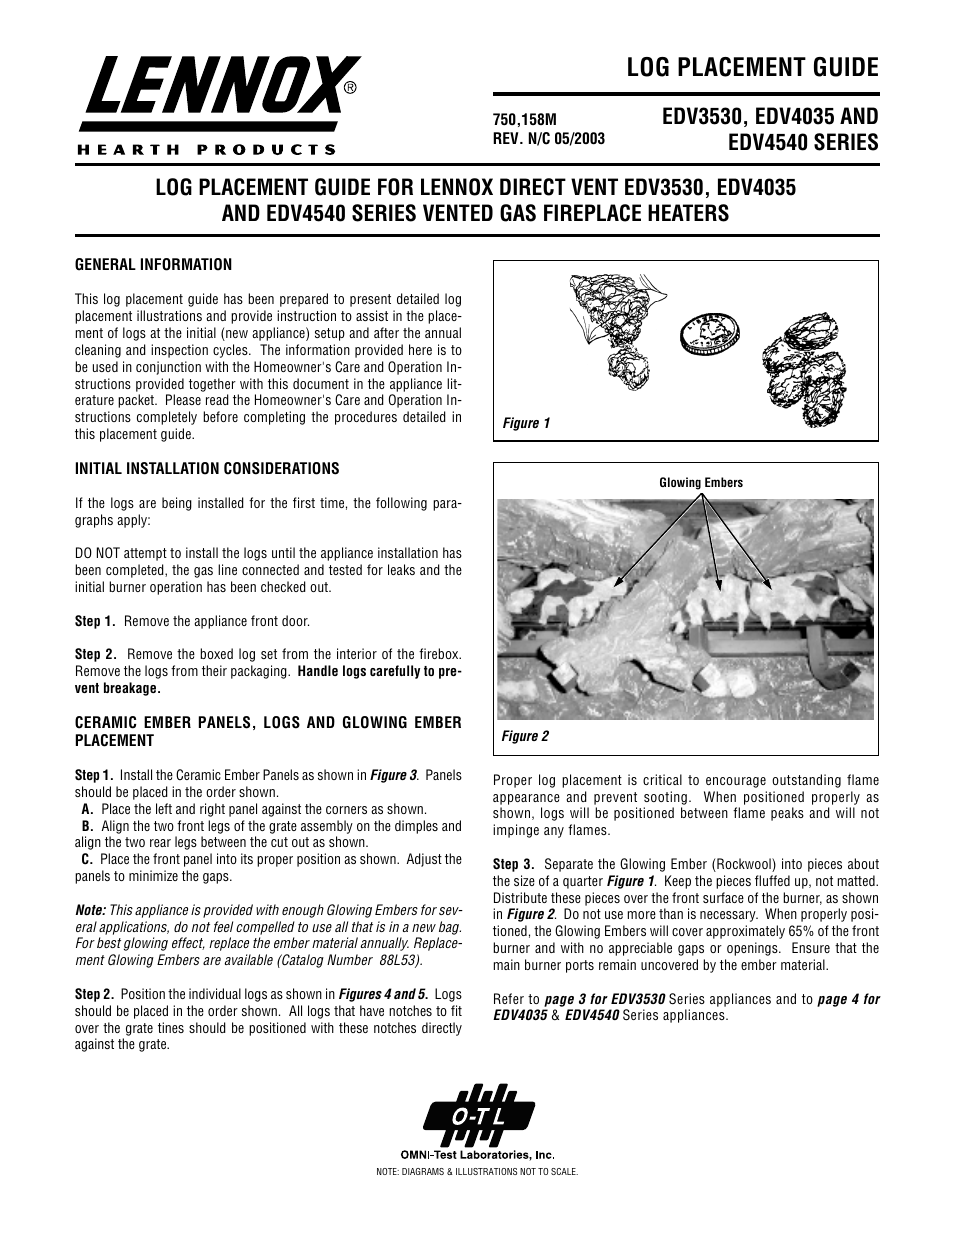 lennox hearth edv3530 series user manual 4 pages also for